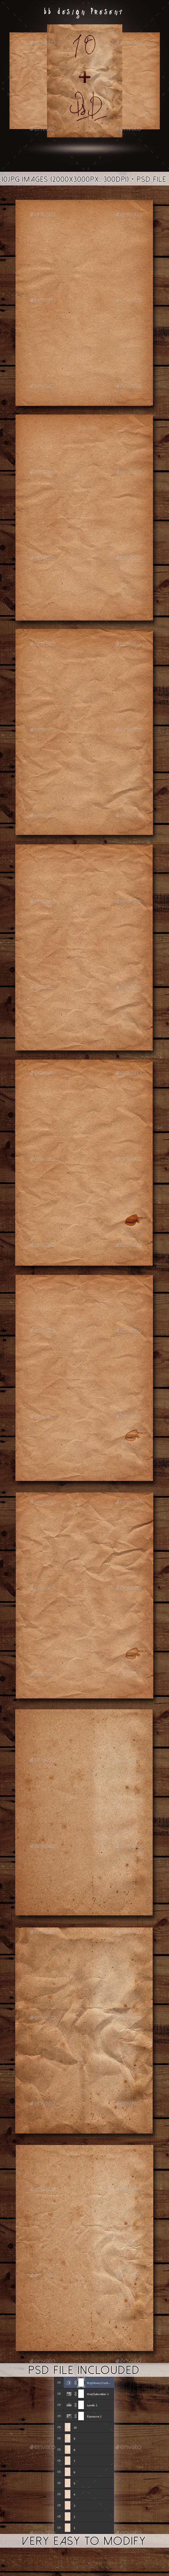 10 Old Paper Textures + PSD File - Paper Textures